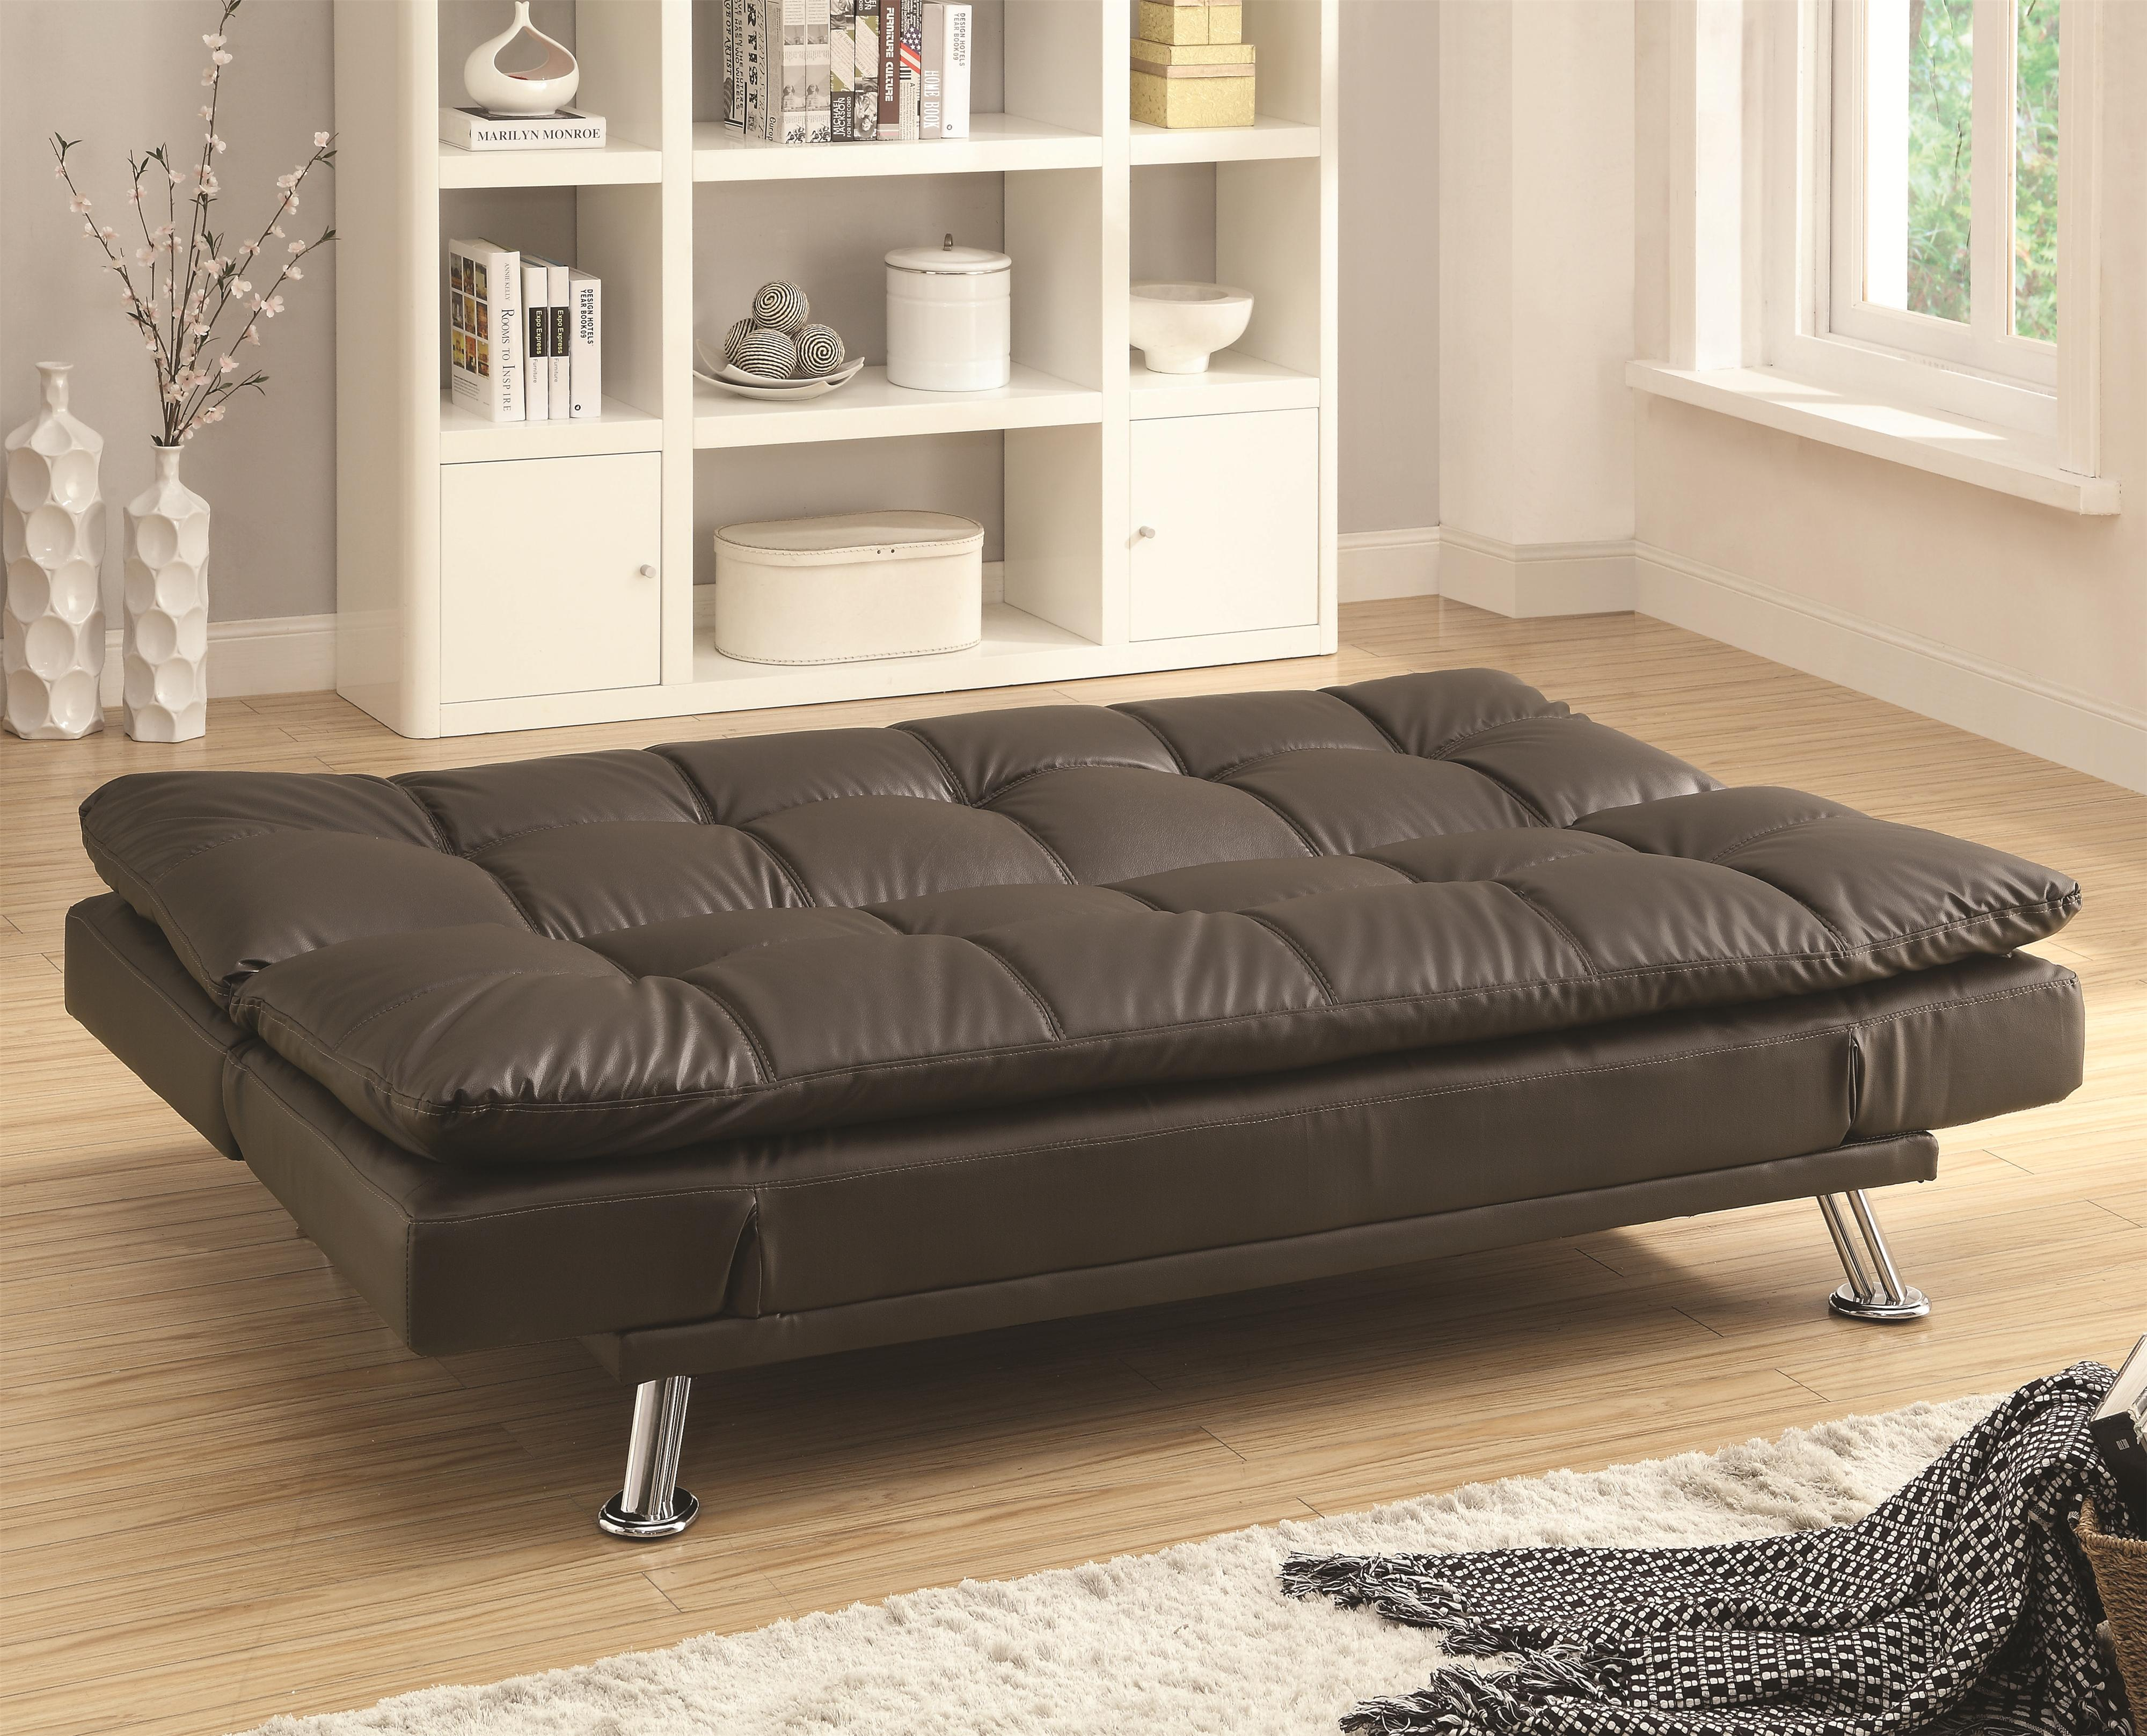 Sofa beds sofa bed in futon style with chrome legs for Sofa bed reviews 2014